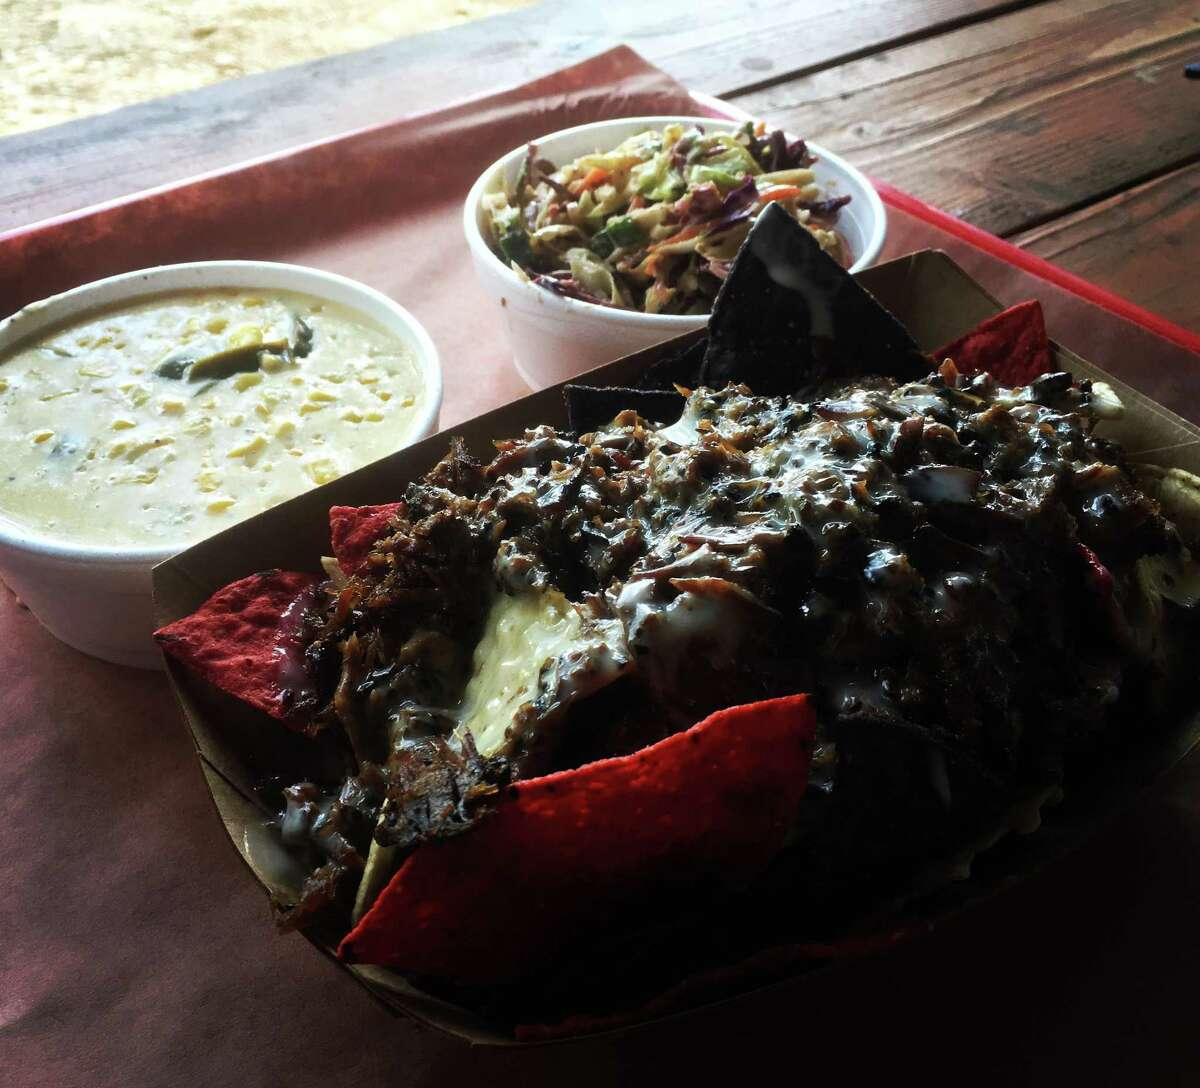 The BBQ nachos ($8) are topped with chopped brisket or pulled pork and layered with a white queso sauce.